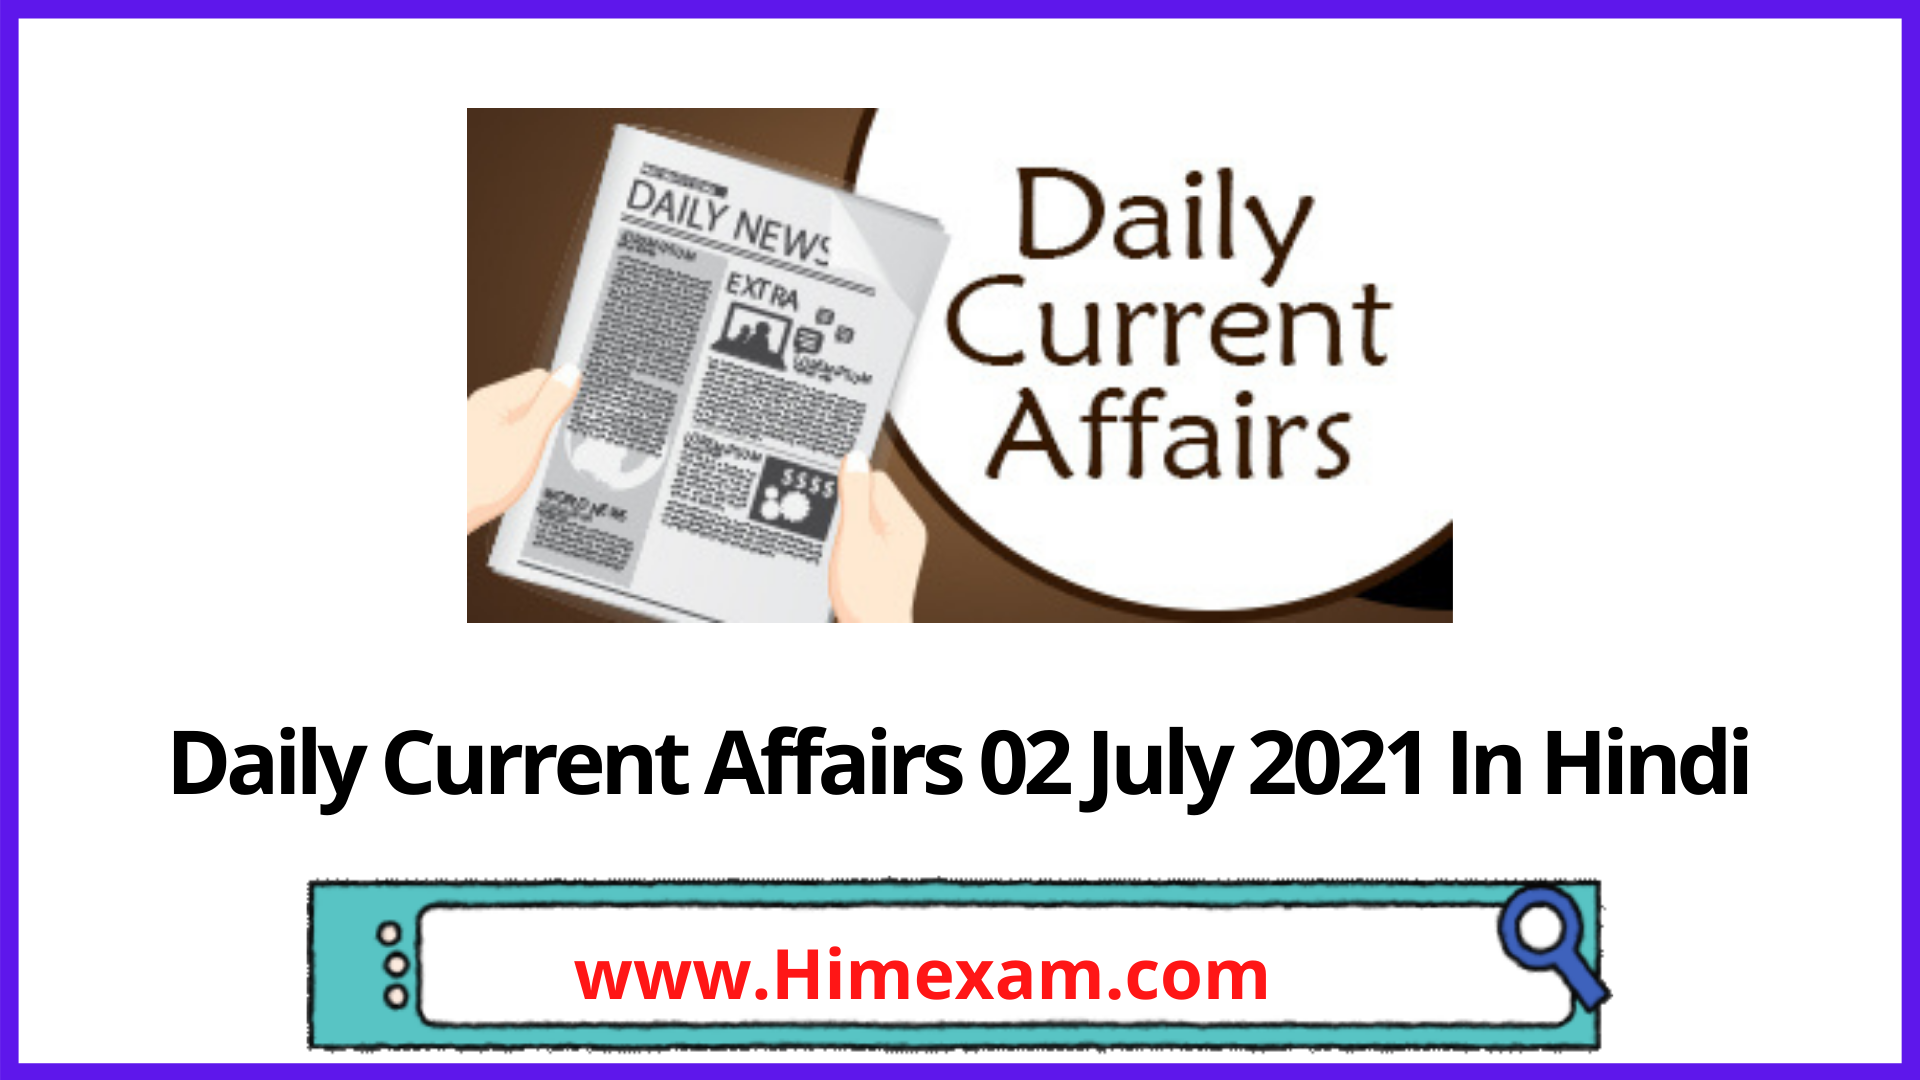 Daily Current Affairs 02 July 2021 In Hindi